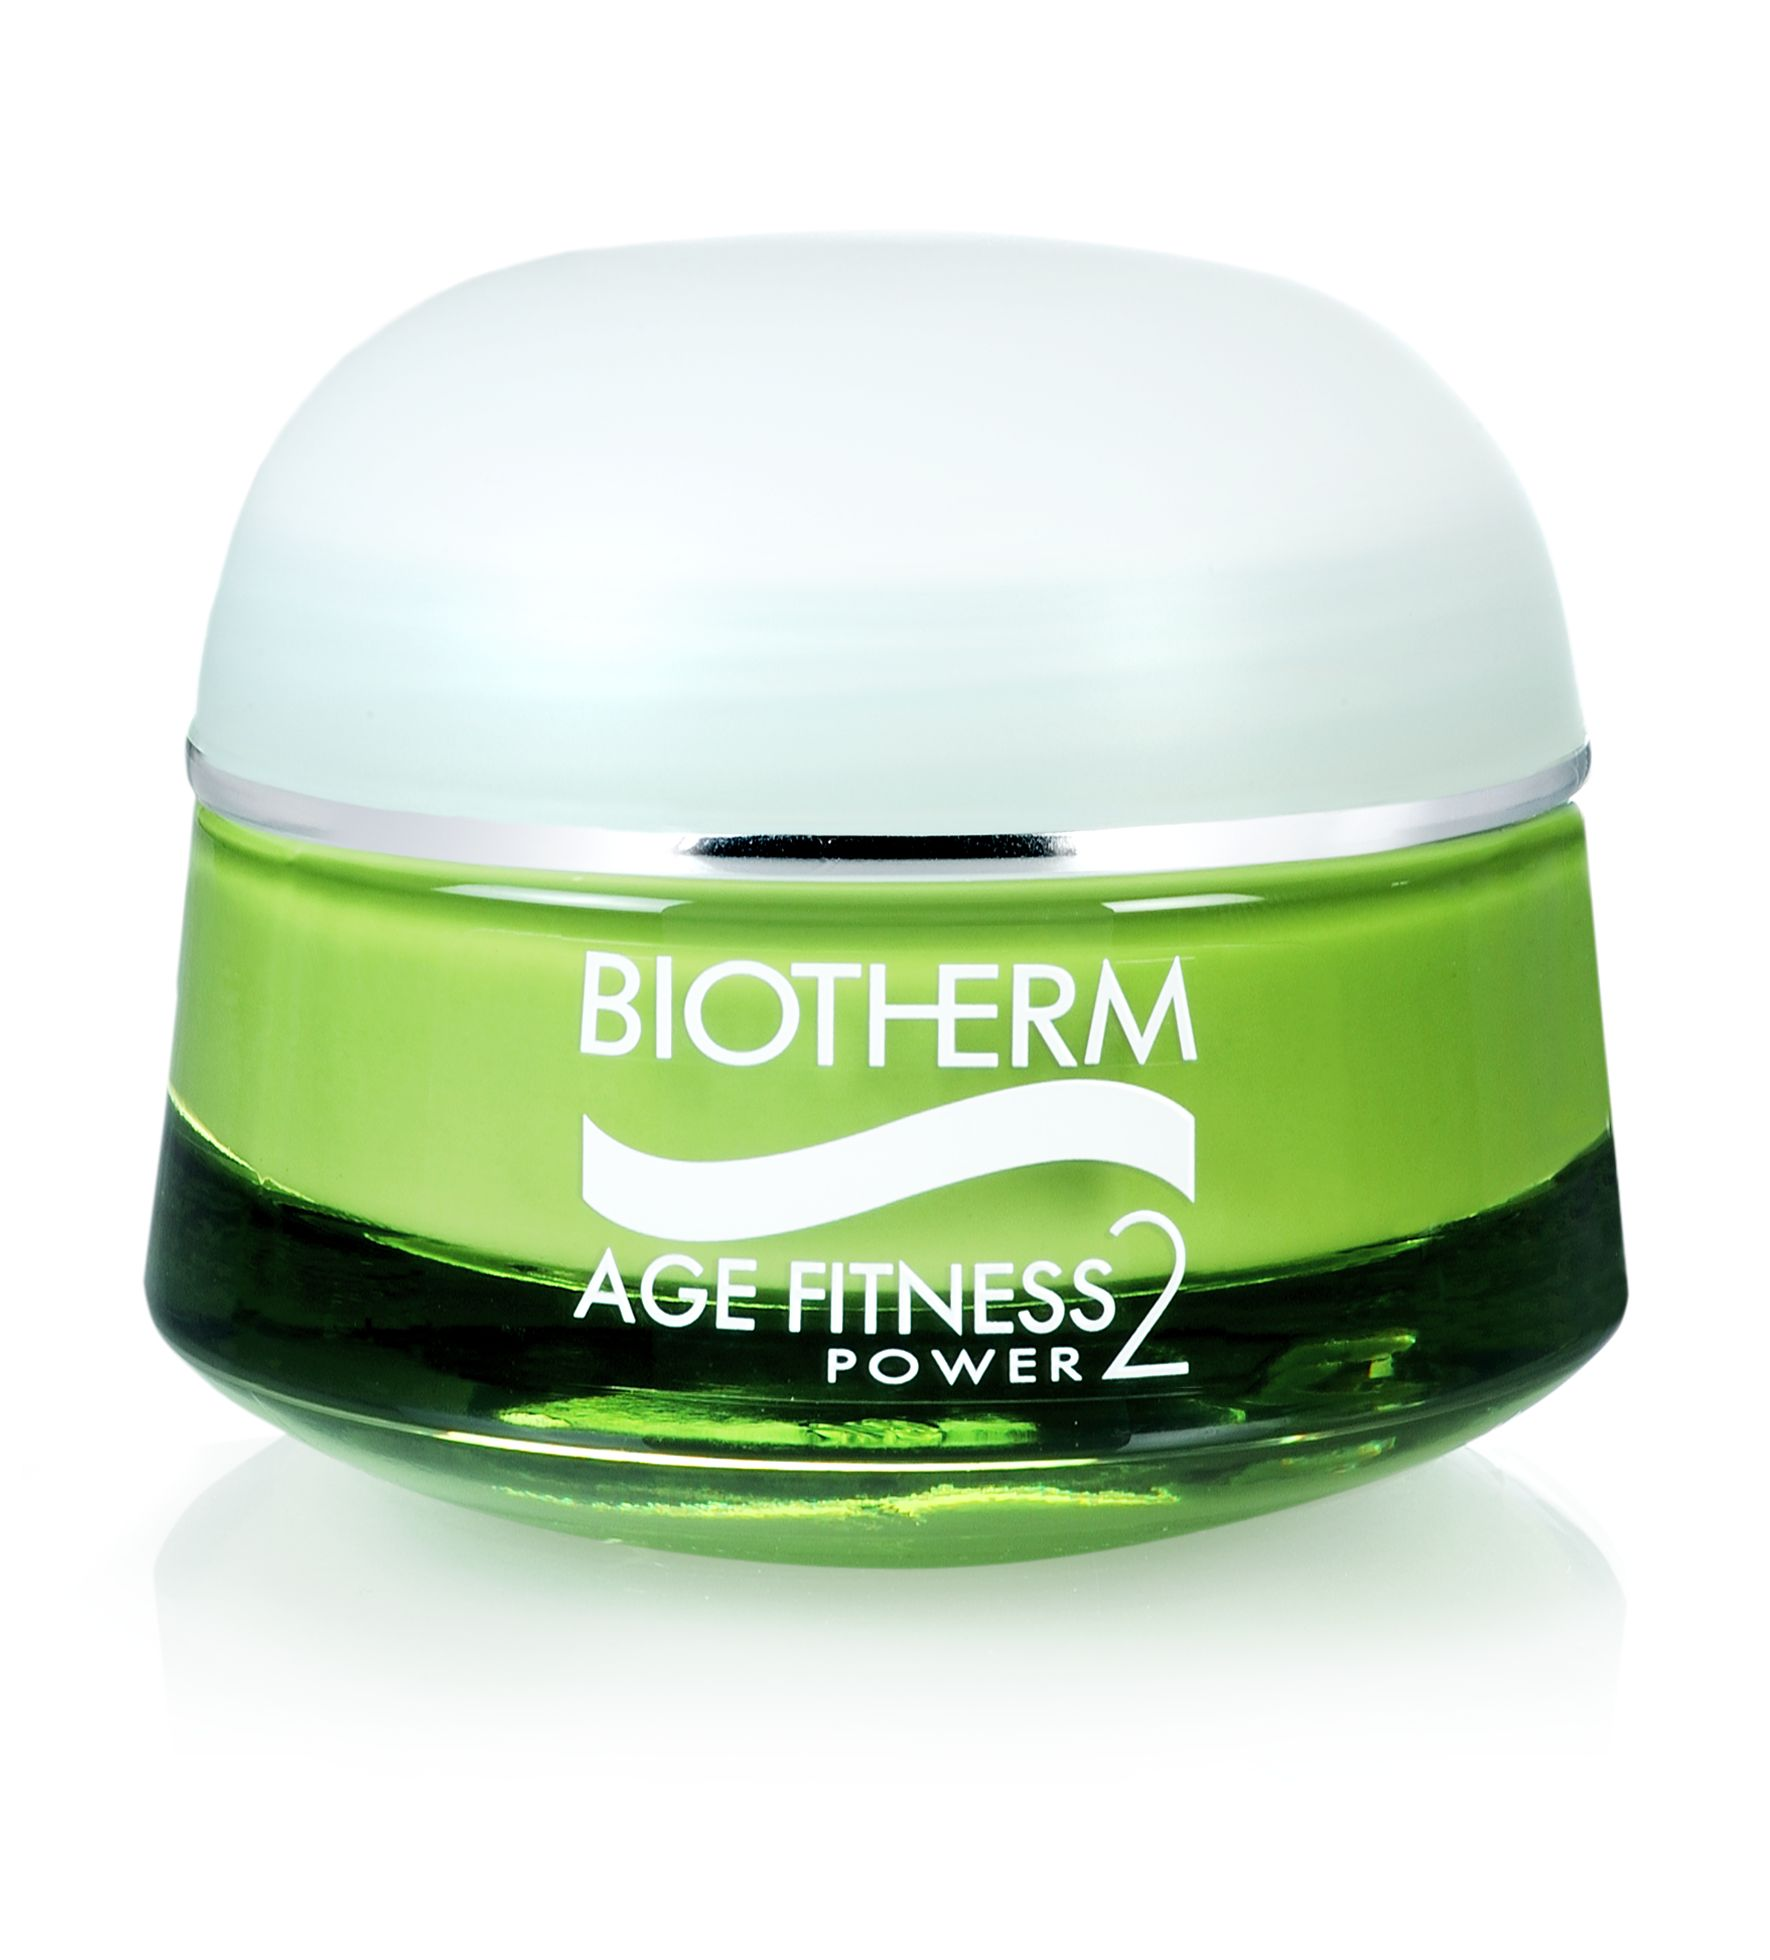 Biotherm 50ml Age Fitness 2 Day moisturiser